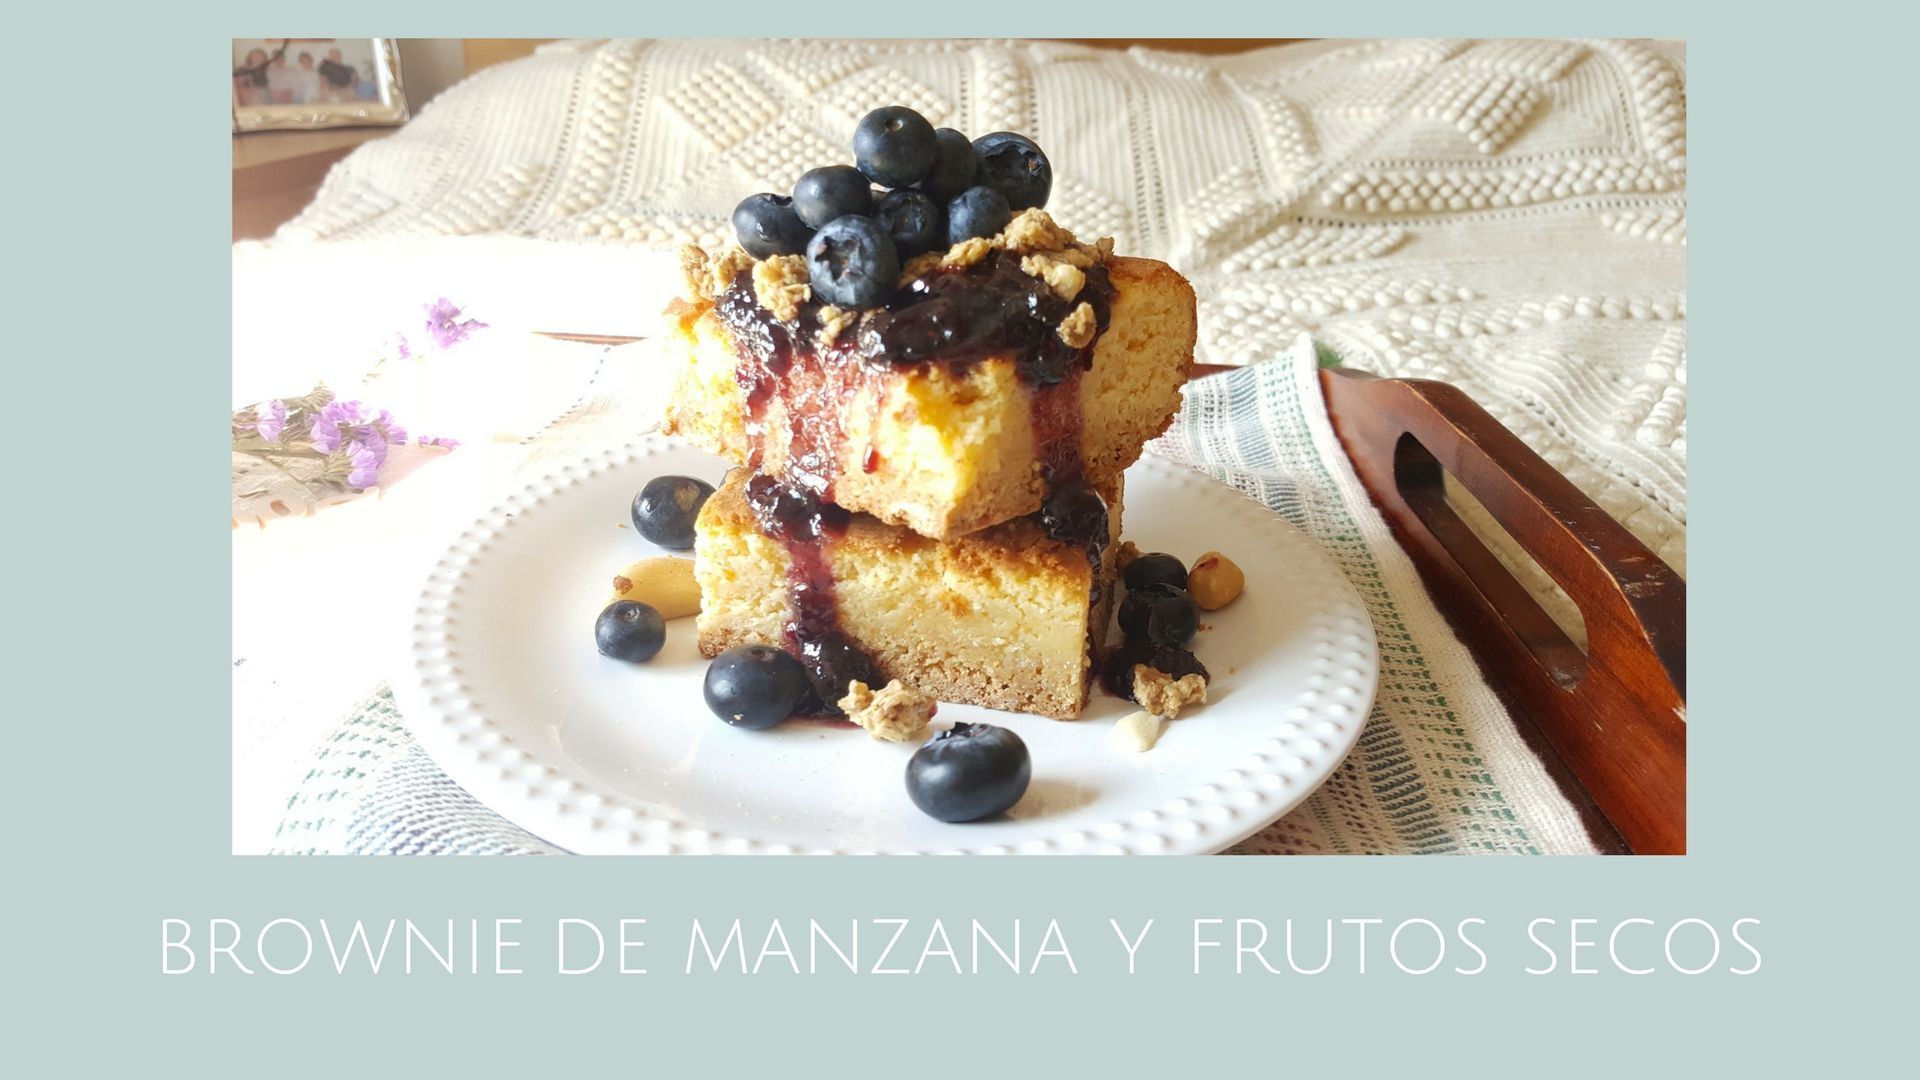 Brownie de manzana y frutos secos / Receta